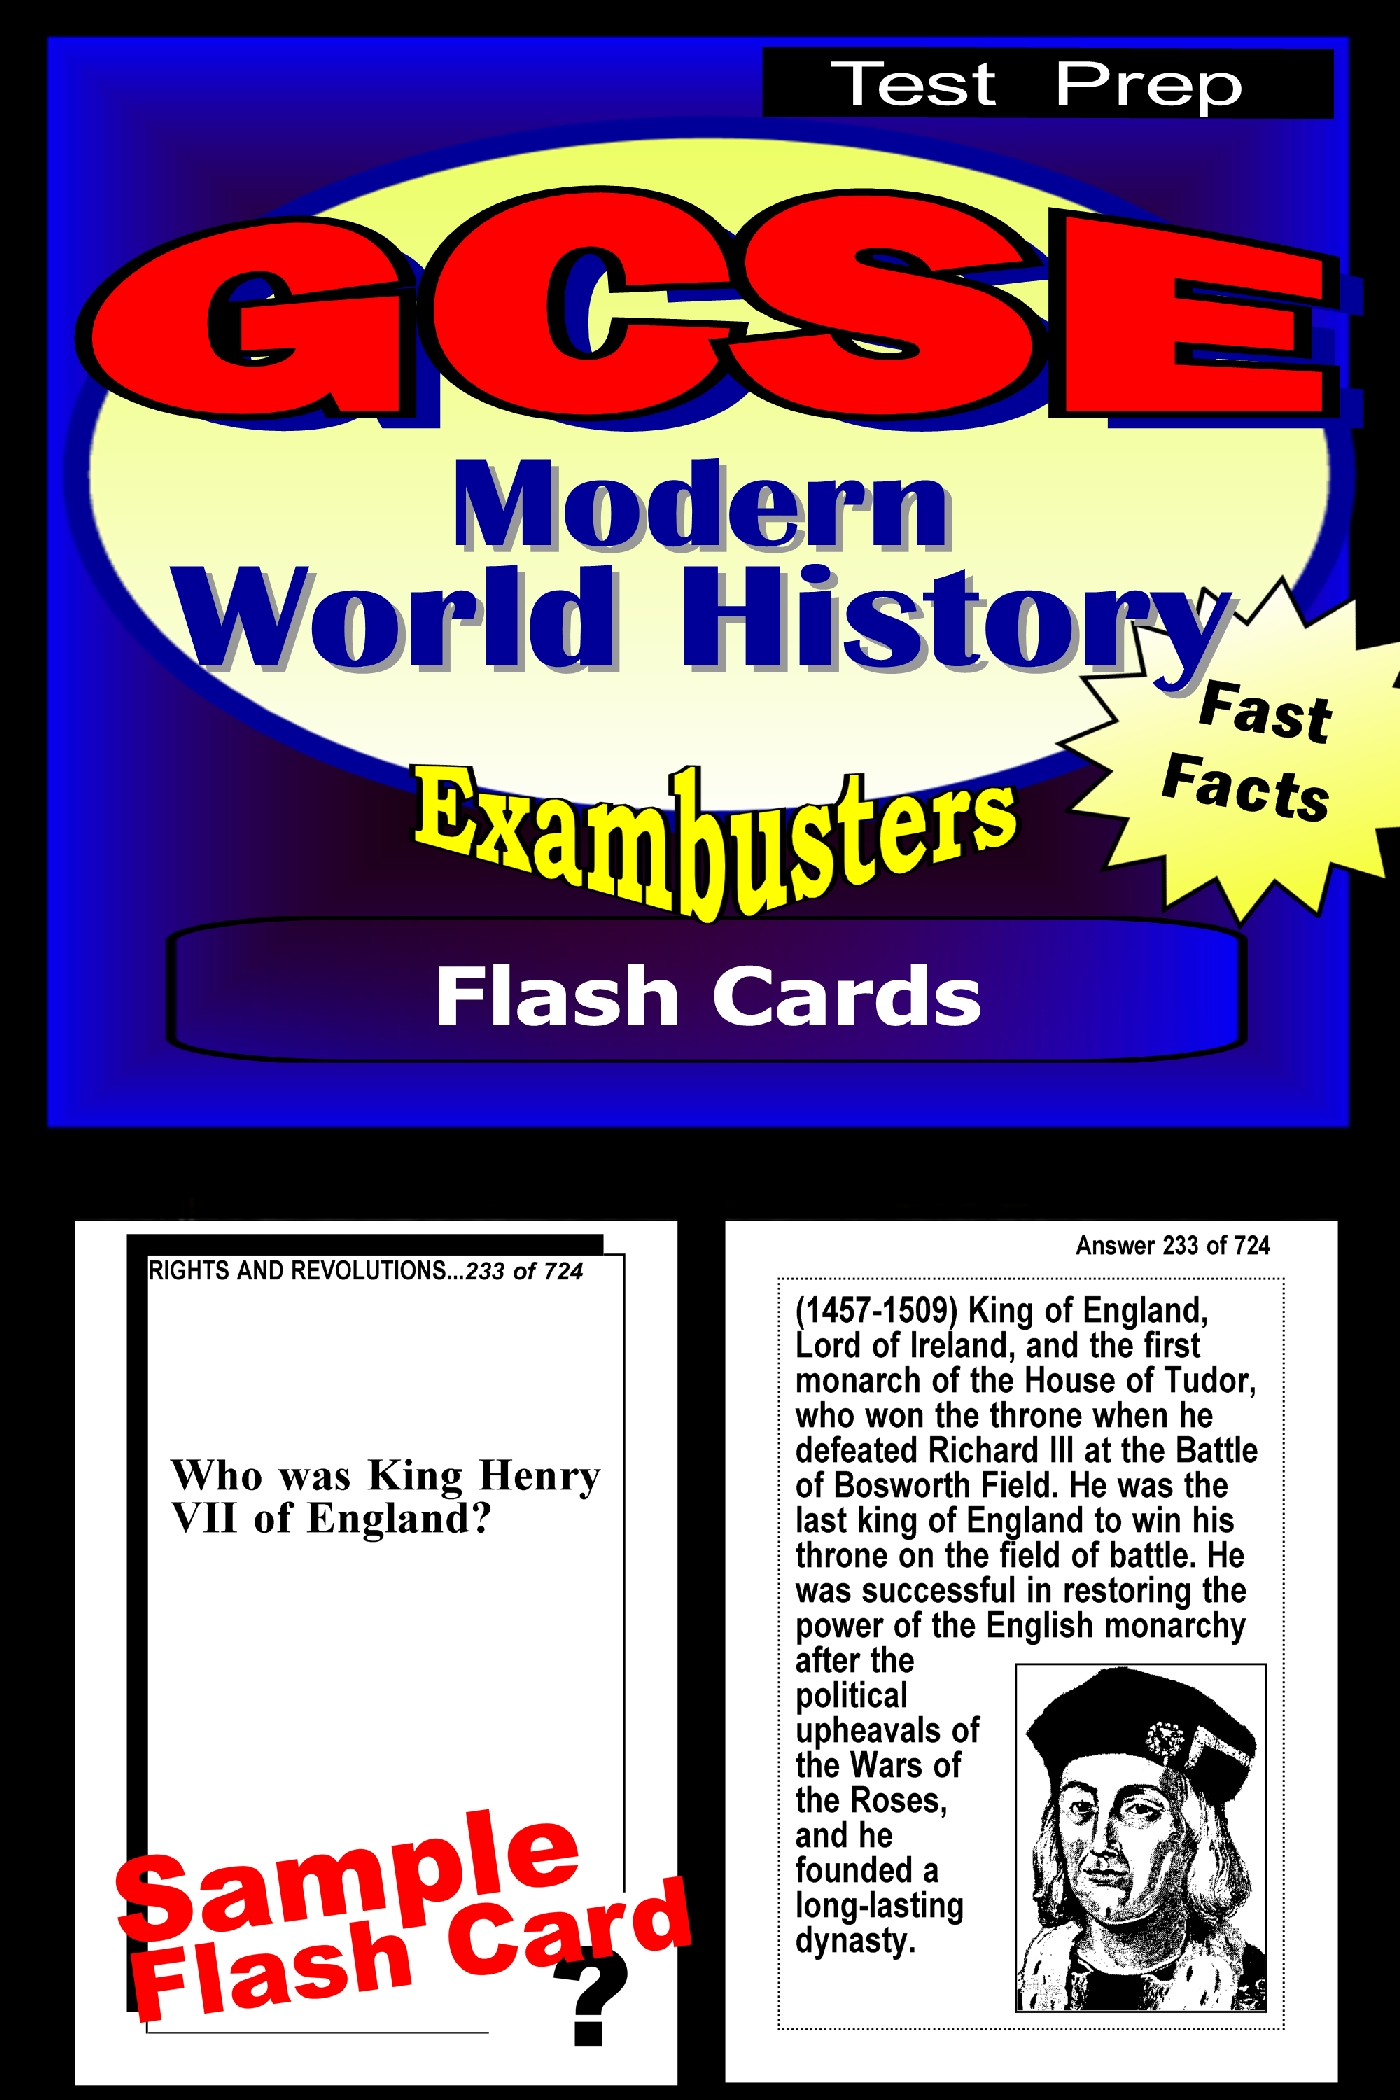 GCSE Modern World History Test Prep Review--Exambusters Flash Cards: GCSE Exam Study Guide